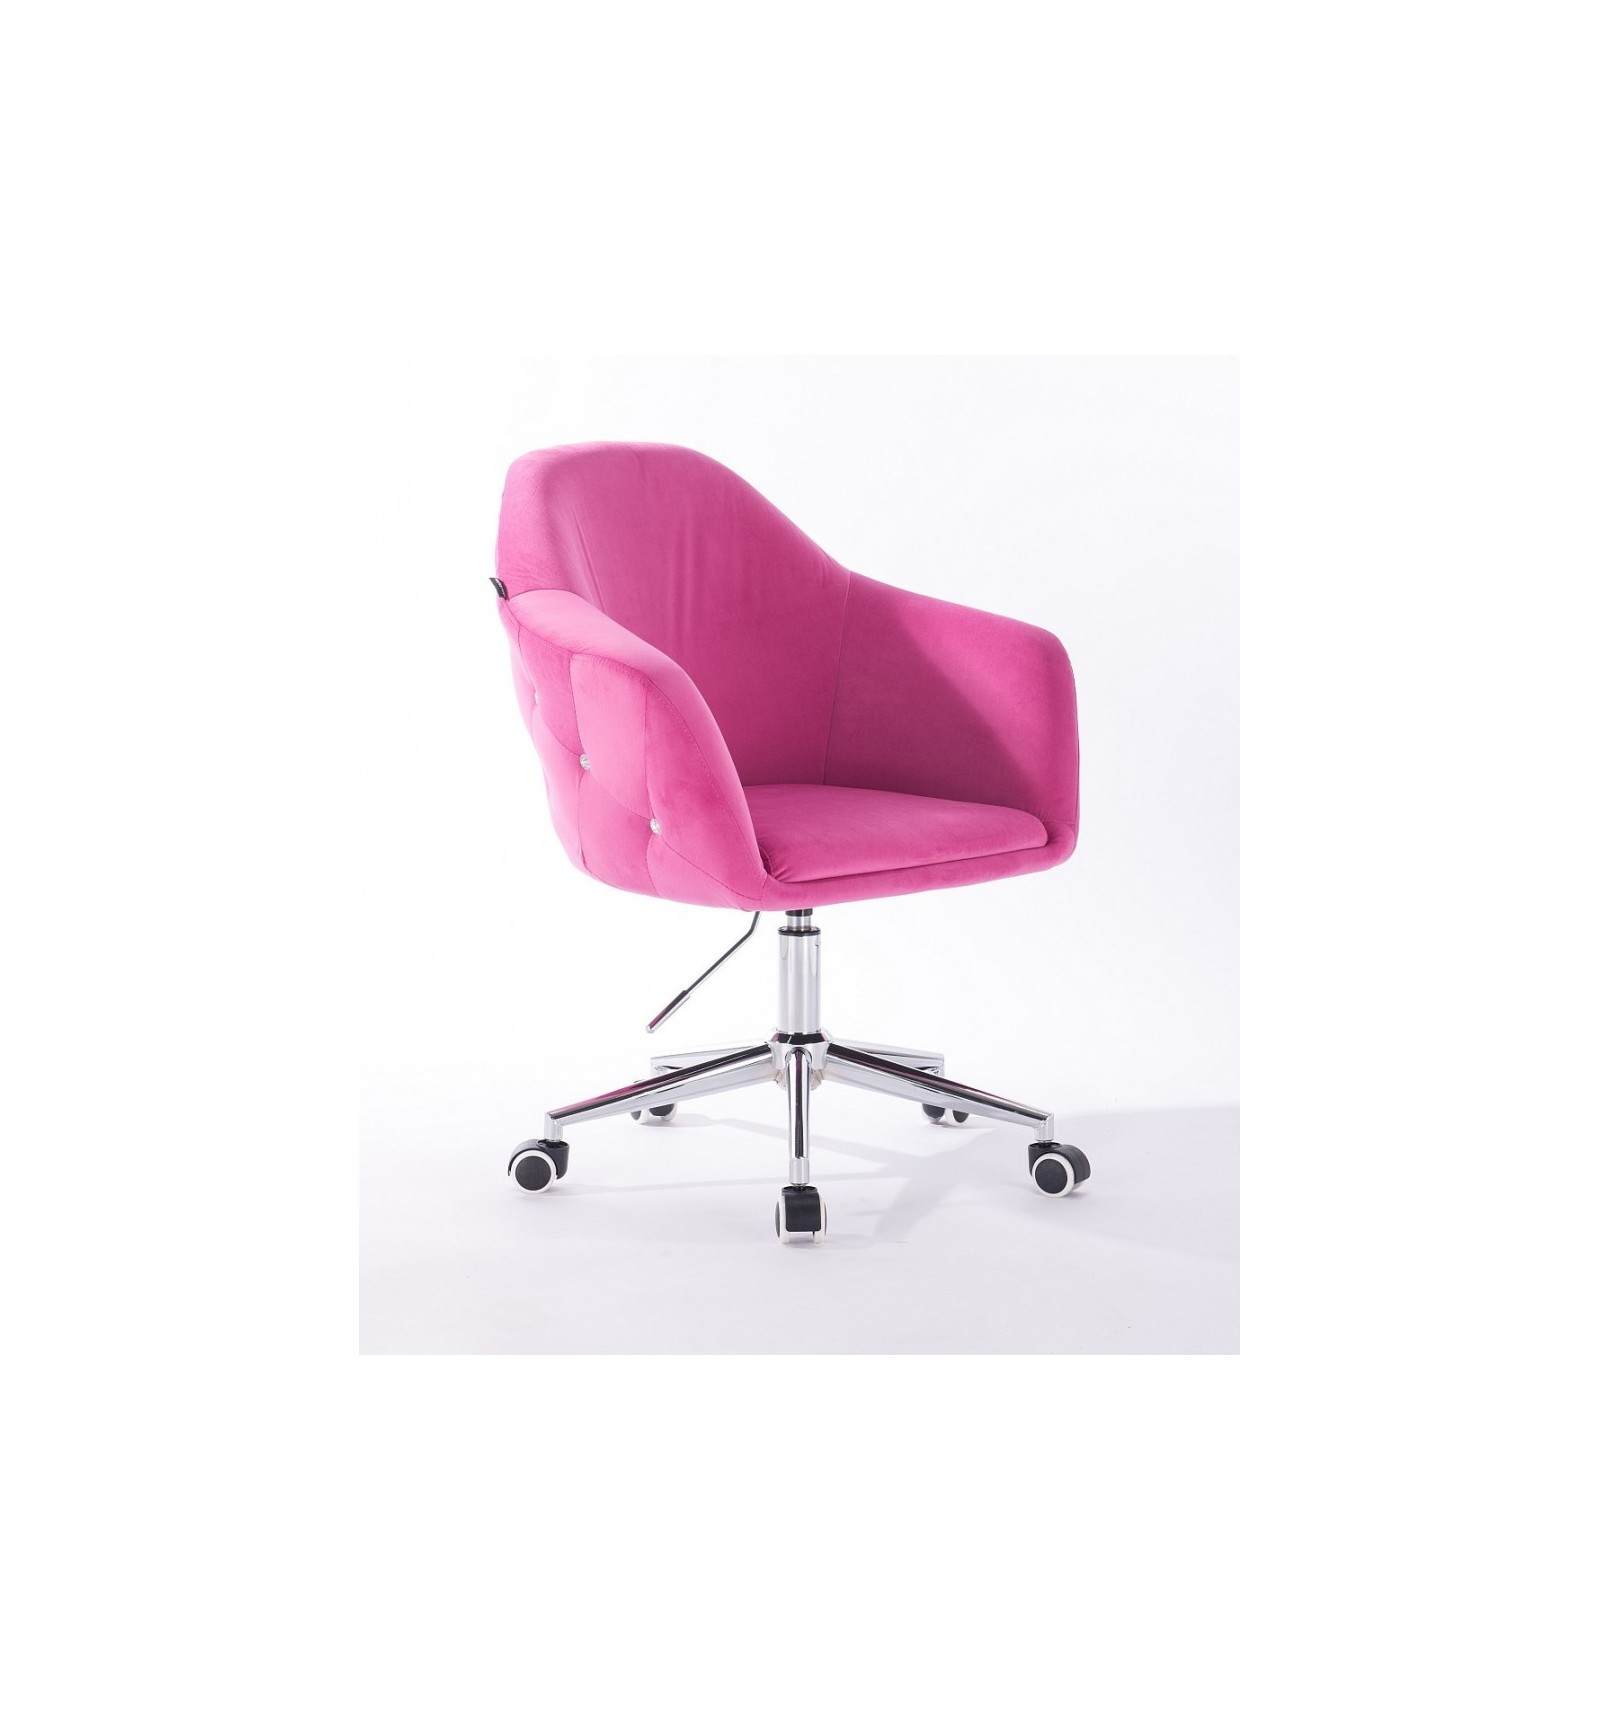 pink nail salon chairs spandex chair covers calgary stylish hroove great for beauty salons and